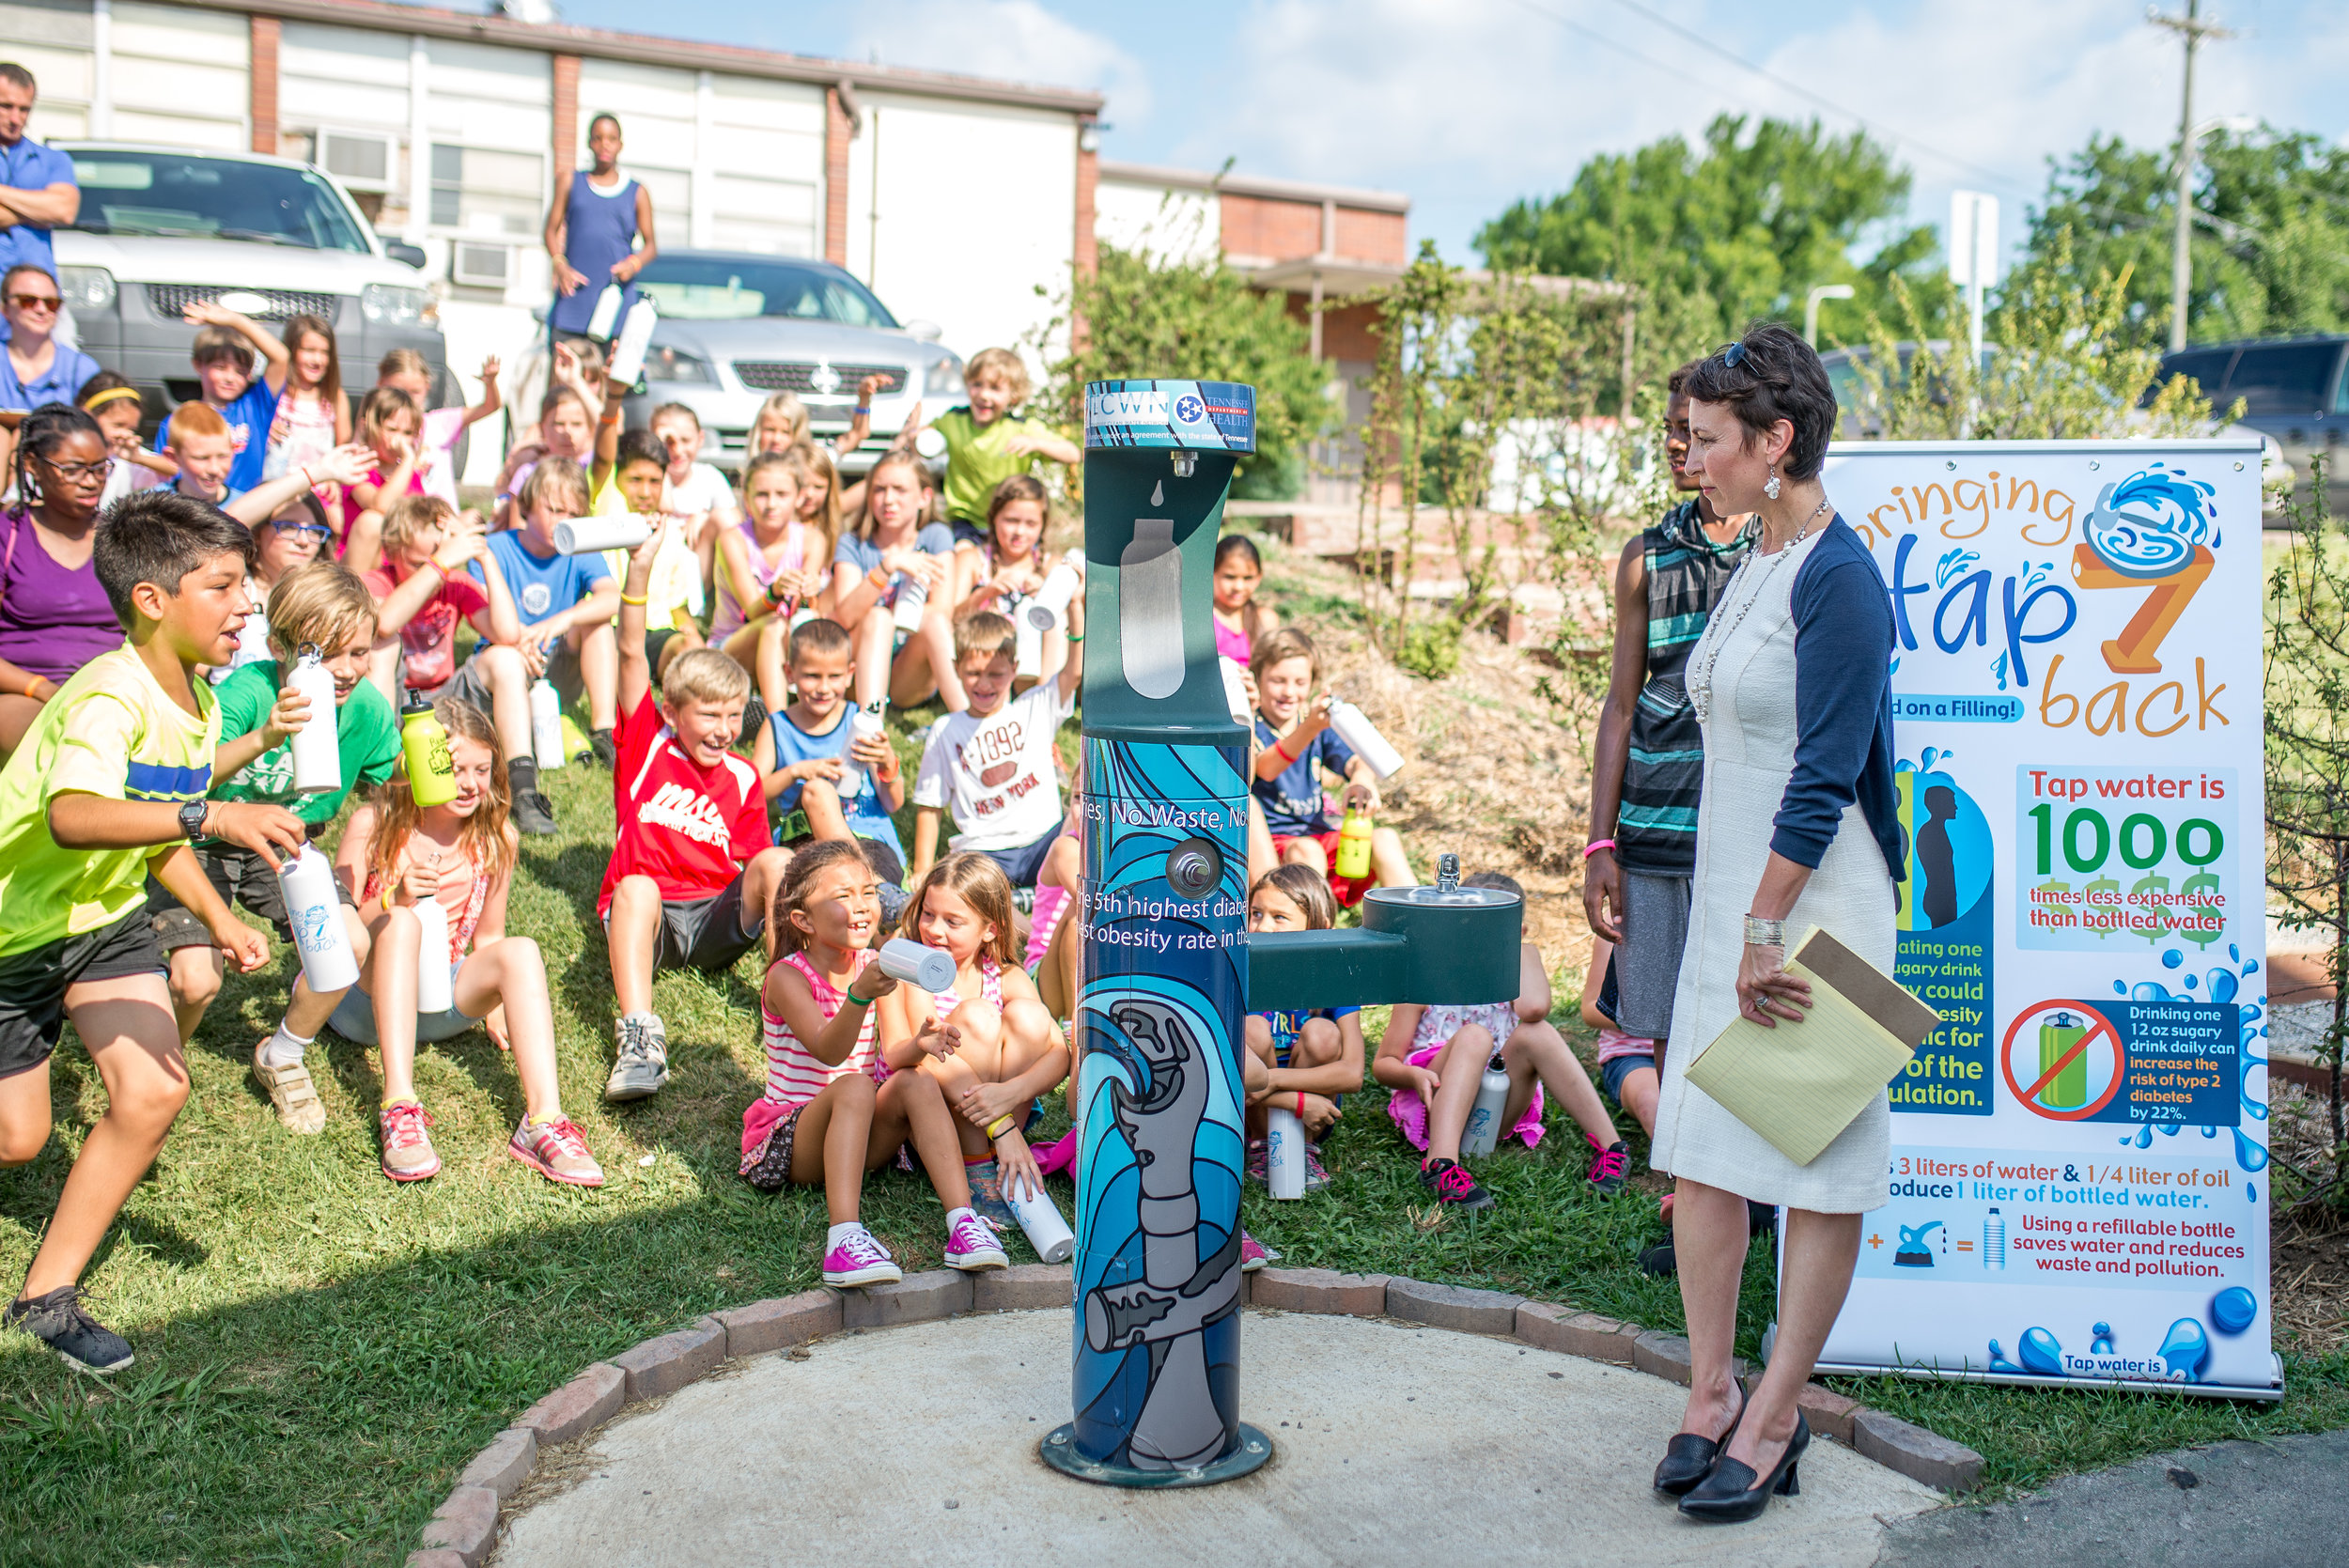 """The Tennessee Clean Water Network gifted us two water fountains to our headquarters where we daily host young people who need refreshing water. Pictured here, participants at Camp Skillz eagerly await their first opportunity to use the new outdoor fountain just outside our community center at the ribbon cutting ceremony where the TCWN program director was interviewed for the local news. Kids from the neighborhood were very grateful, asking us over and over again, """" Is this for us? """""""